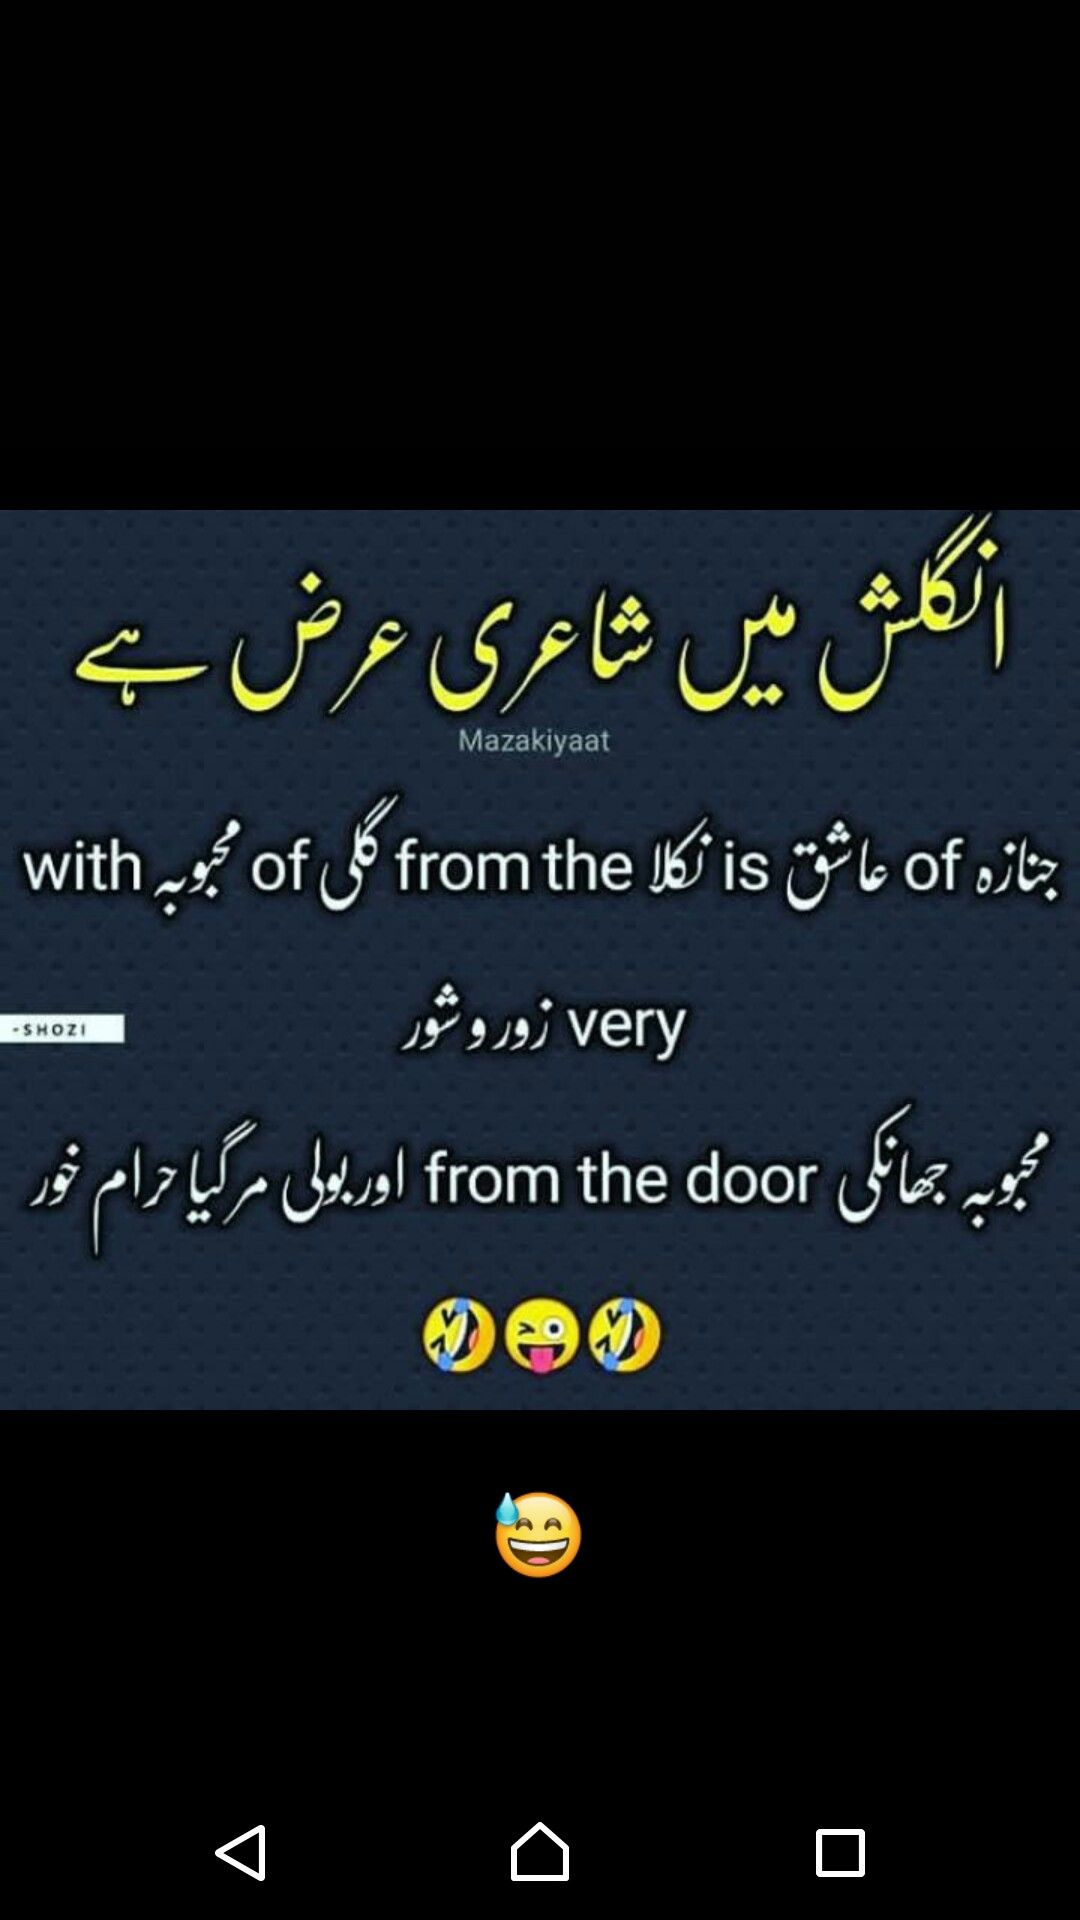 Pin By Zulfiquar Arib On My Fav Poetry Cute Funny Quotes Funny Words Urdu Funny Poetry